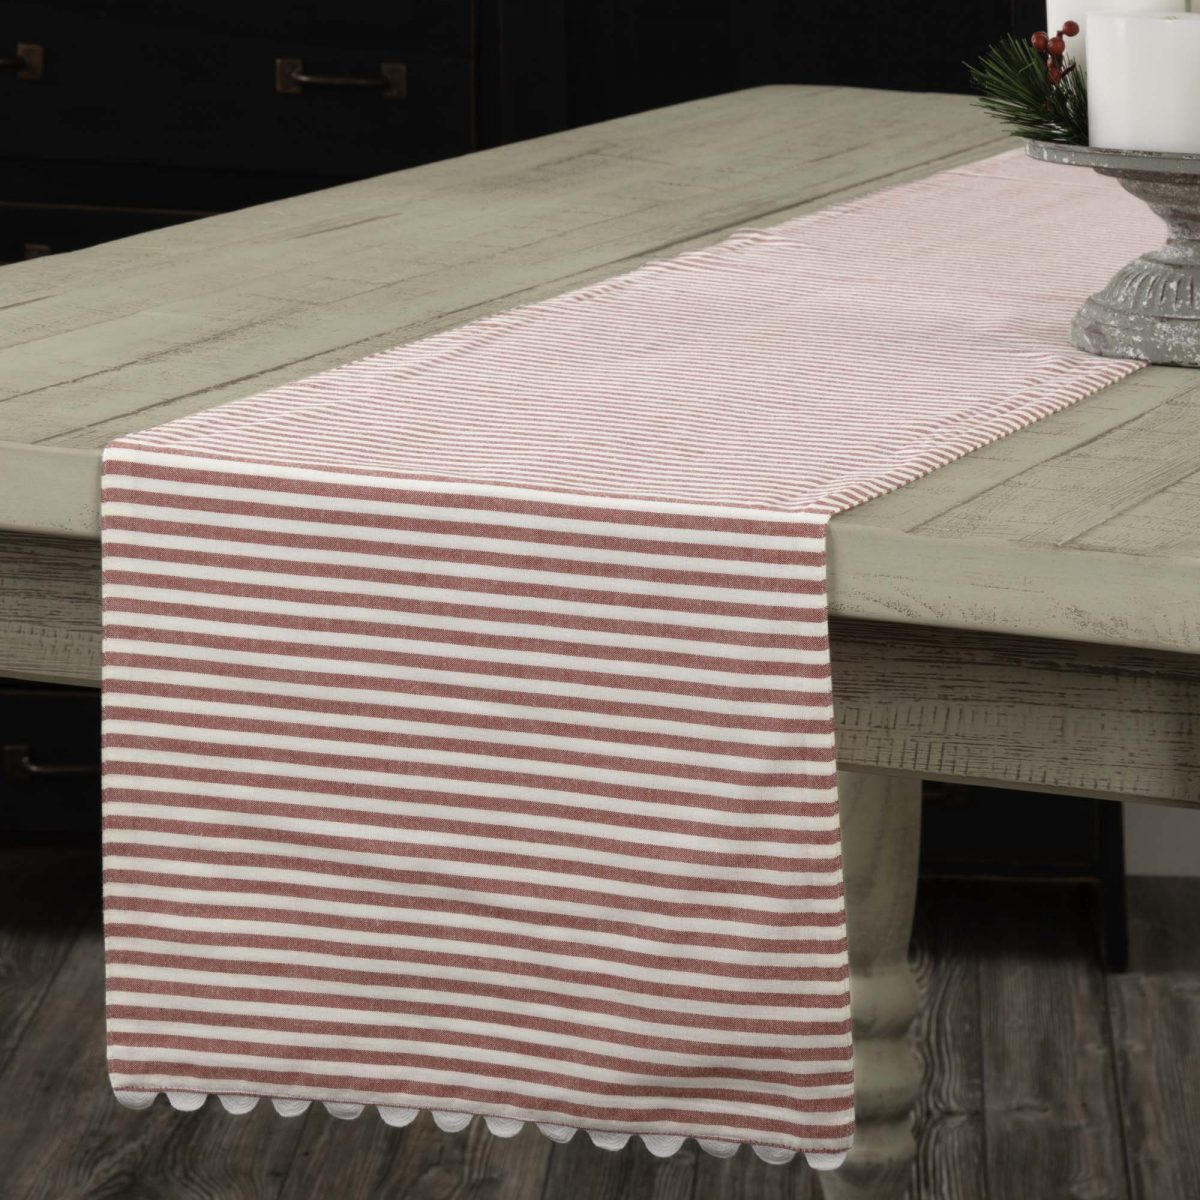 farmhouse ticking red table runner 36 piper classics. Black Bedroom Furniture Sets. Home Design Ideas